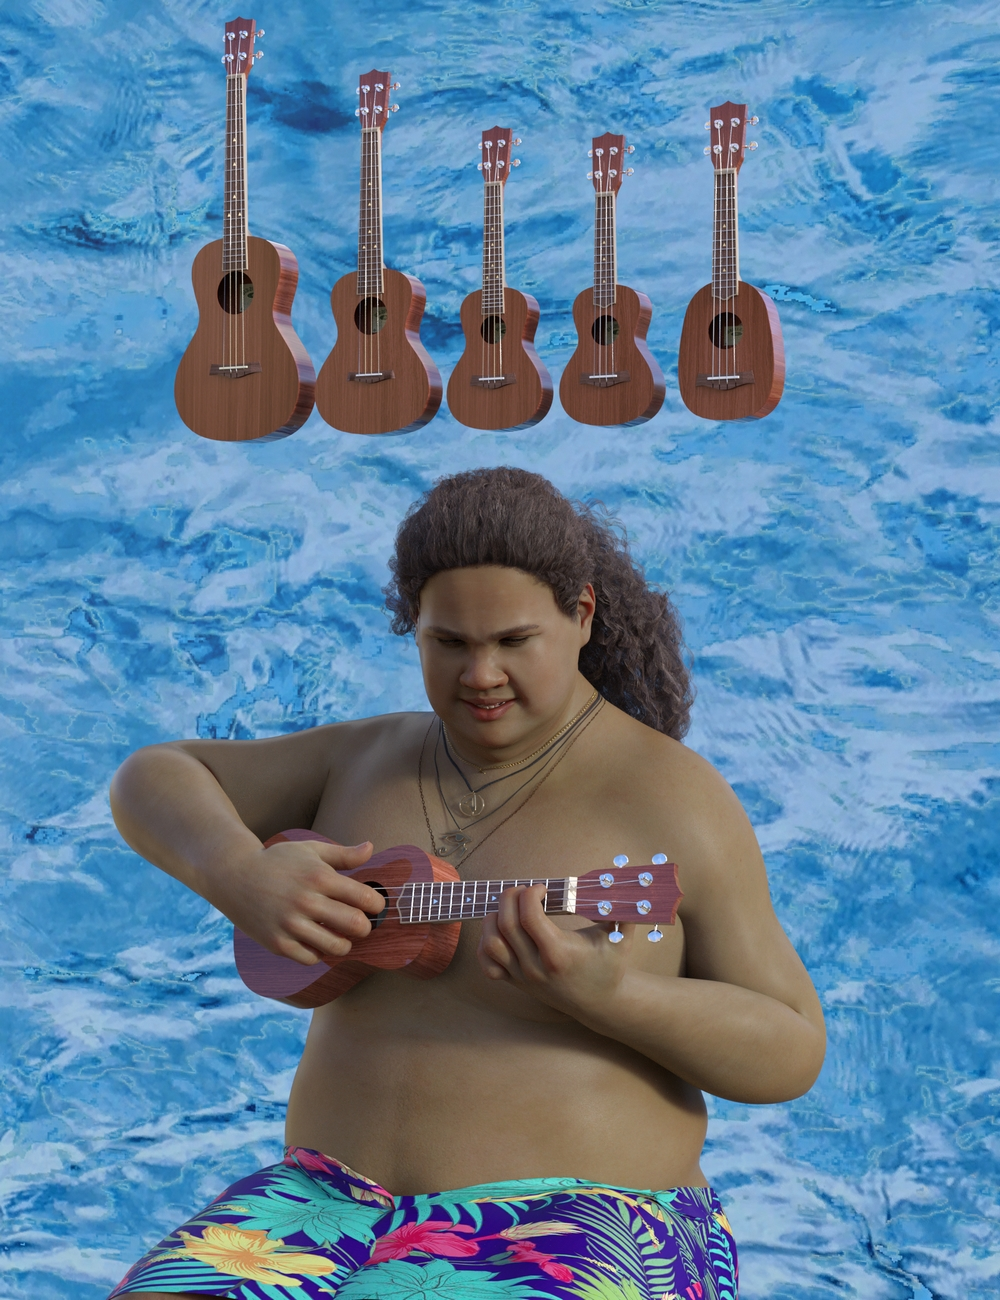 Ukulele Collection for Genesis 8 by: SirArtist, 3D Models by Daz 3D